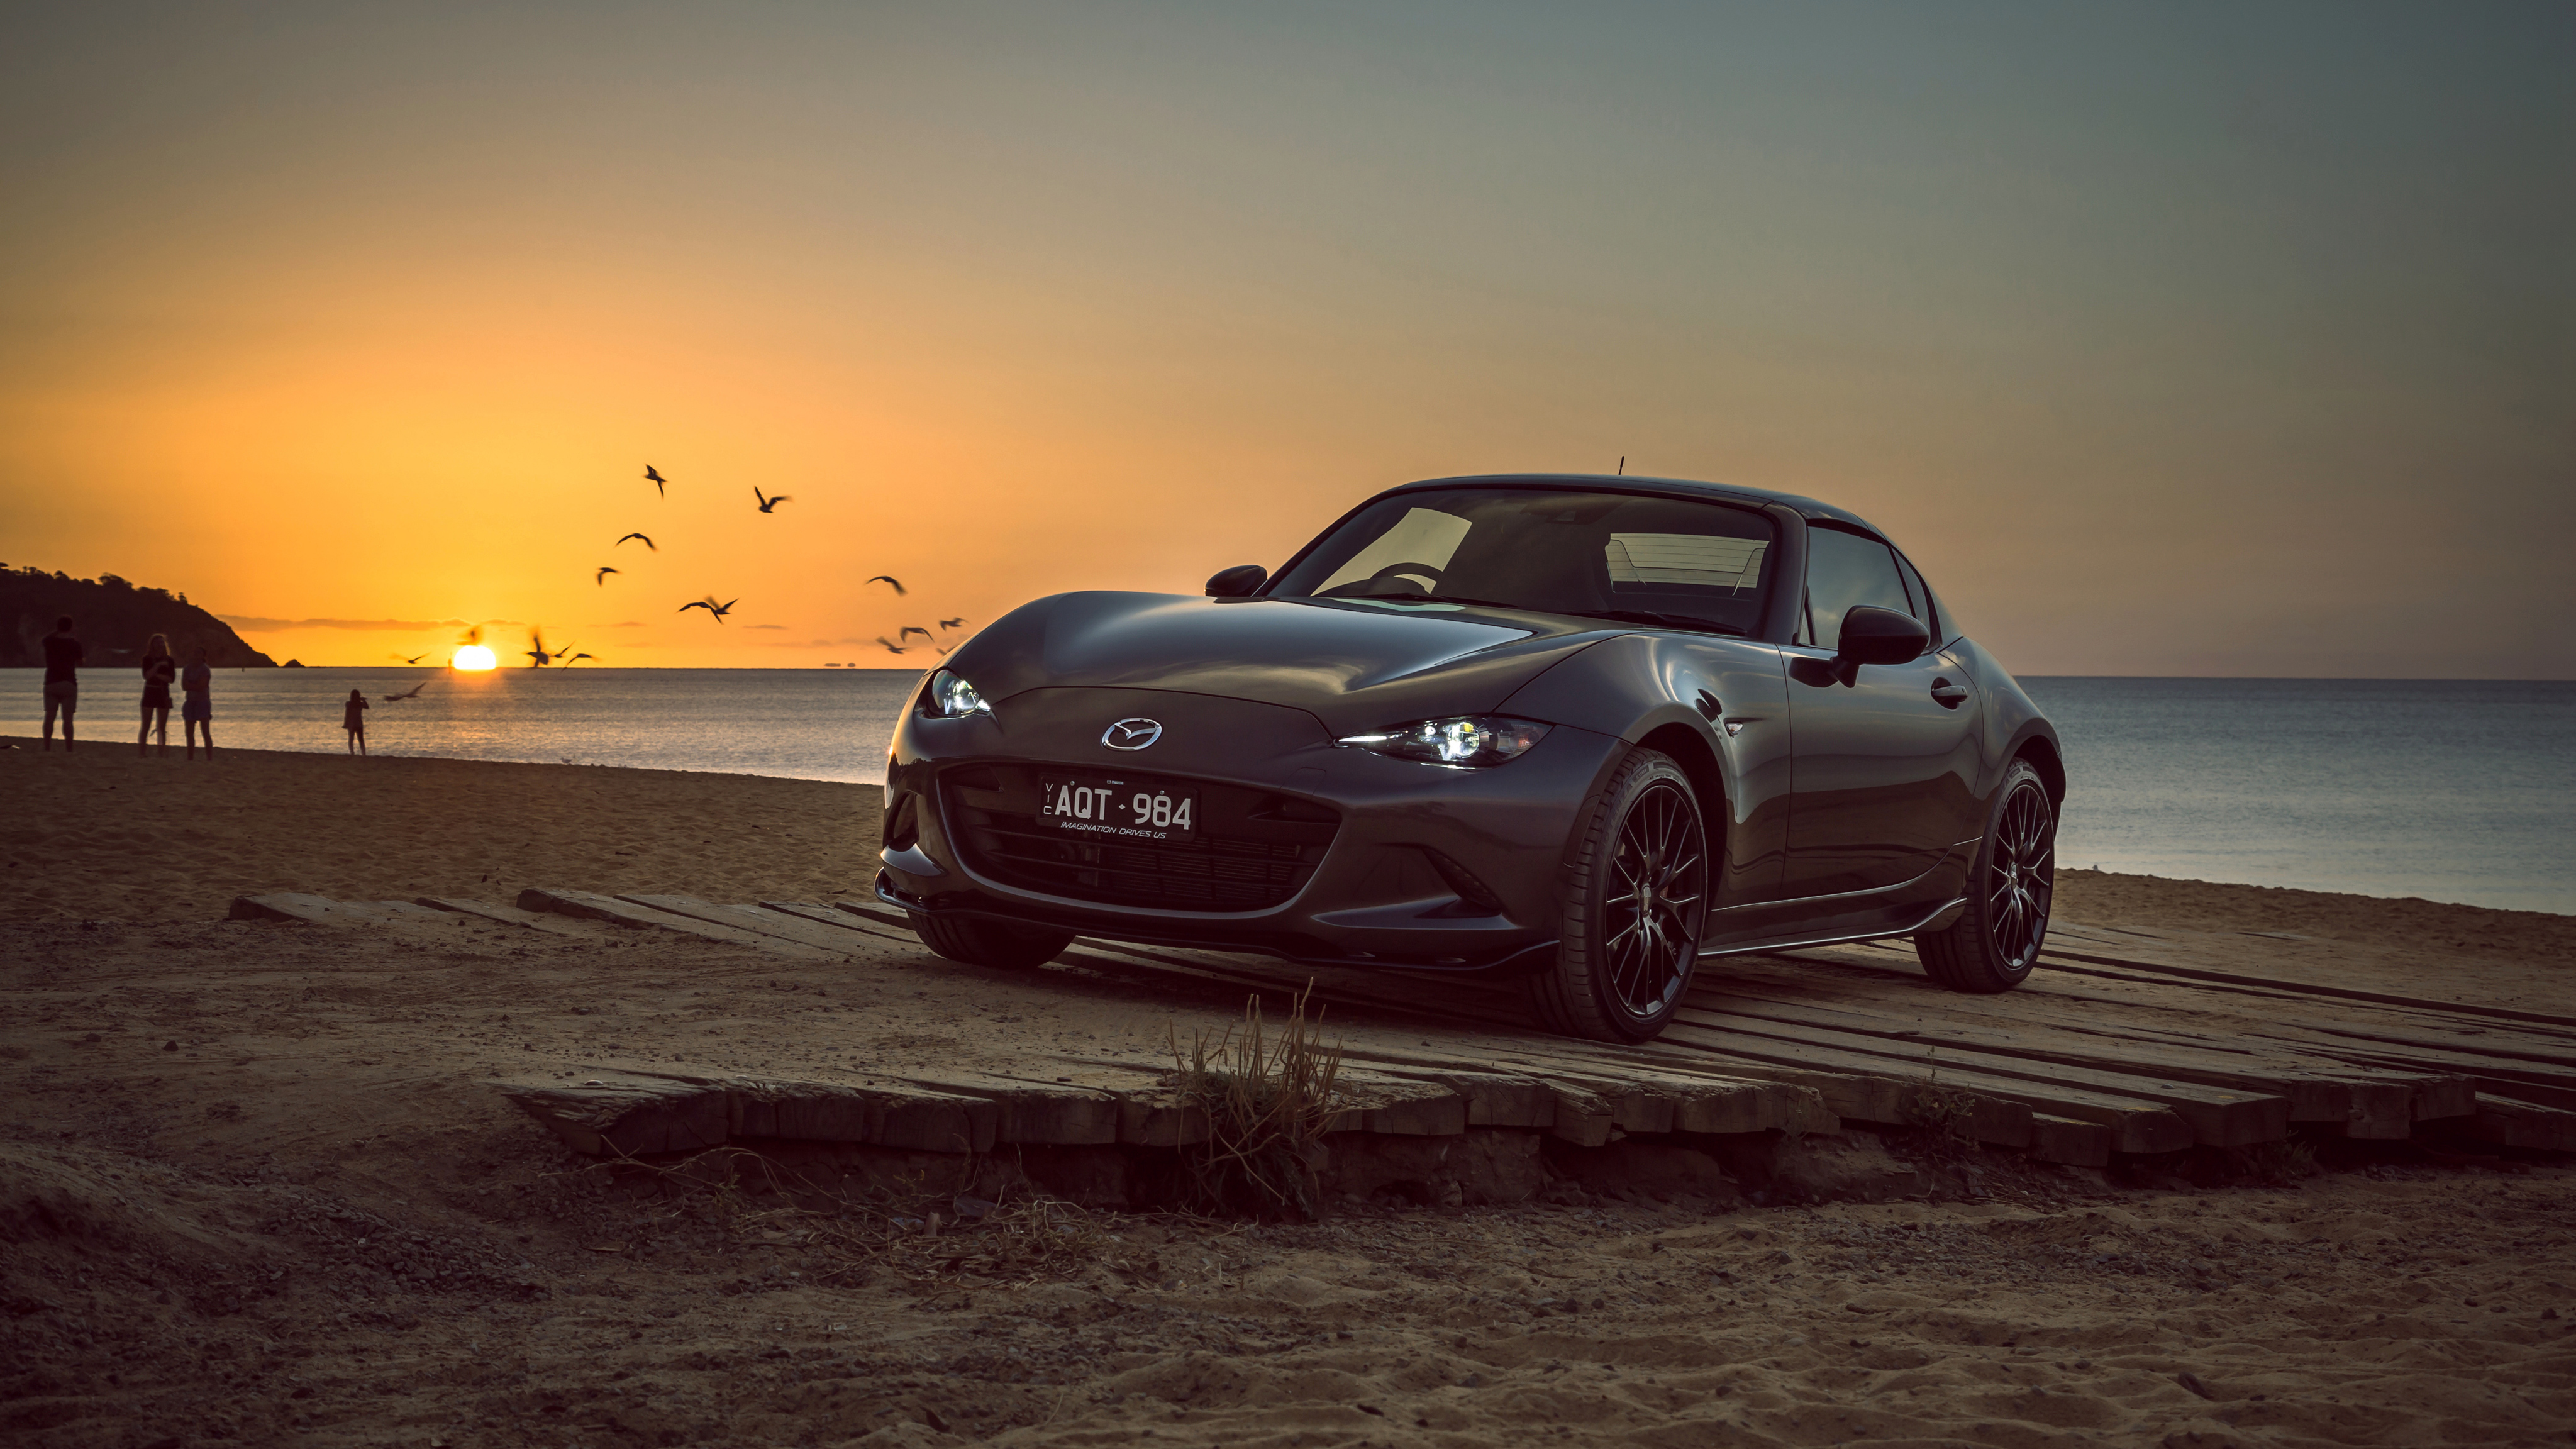 2018 Mazda Mx 5 Rf Limited Edition 4k Wallpaper Hd Car Wallpapers